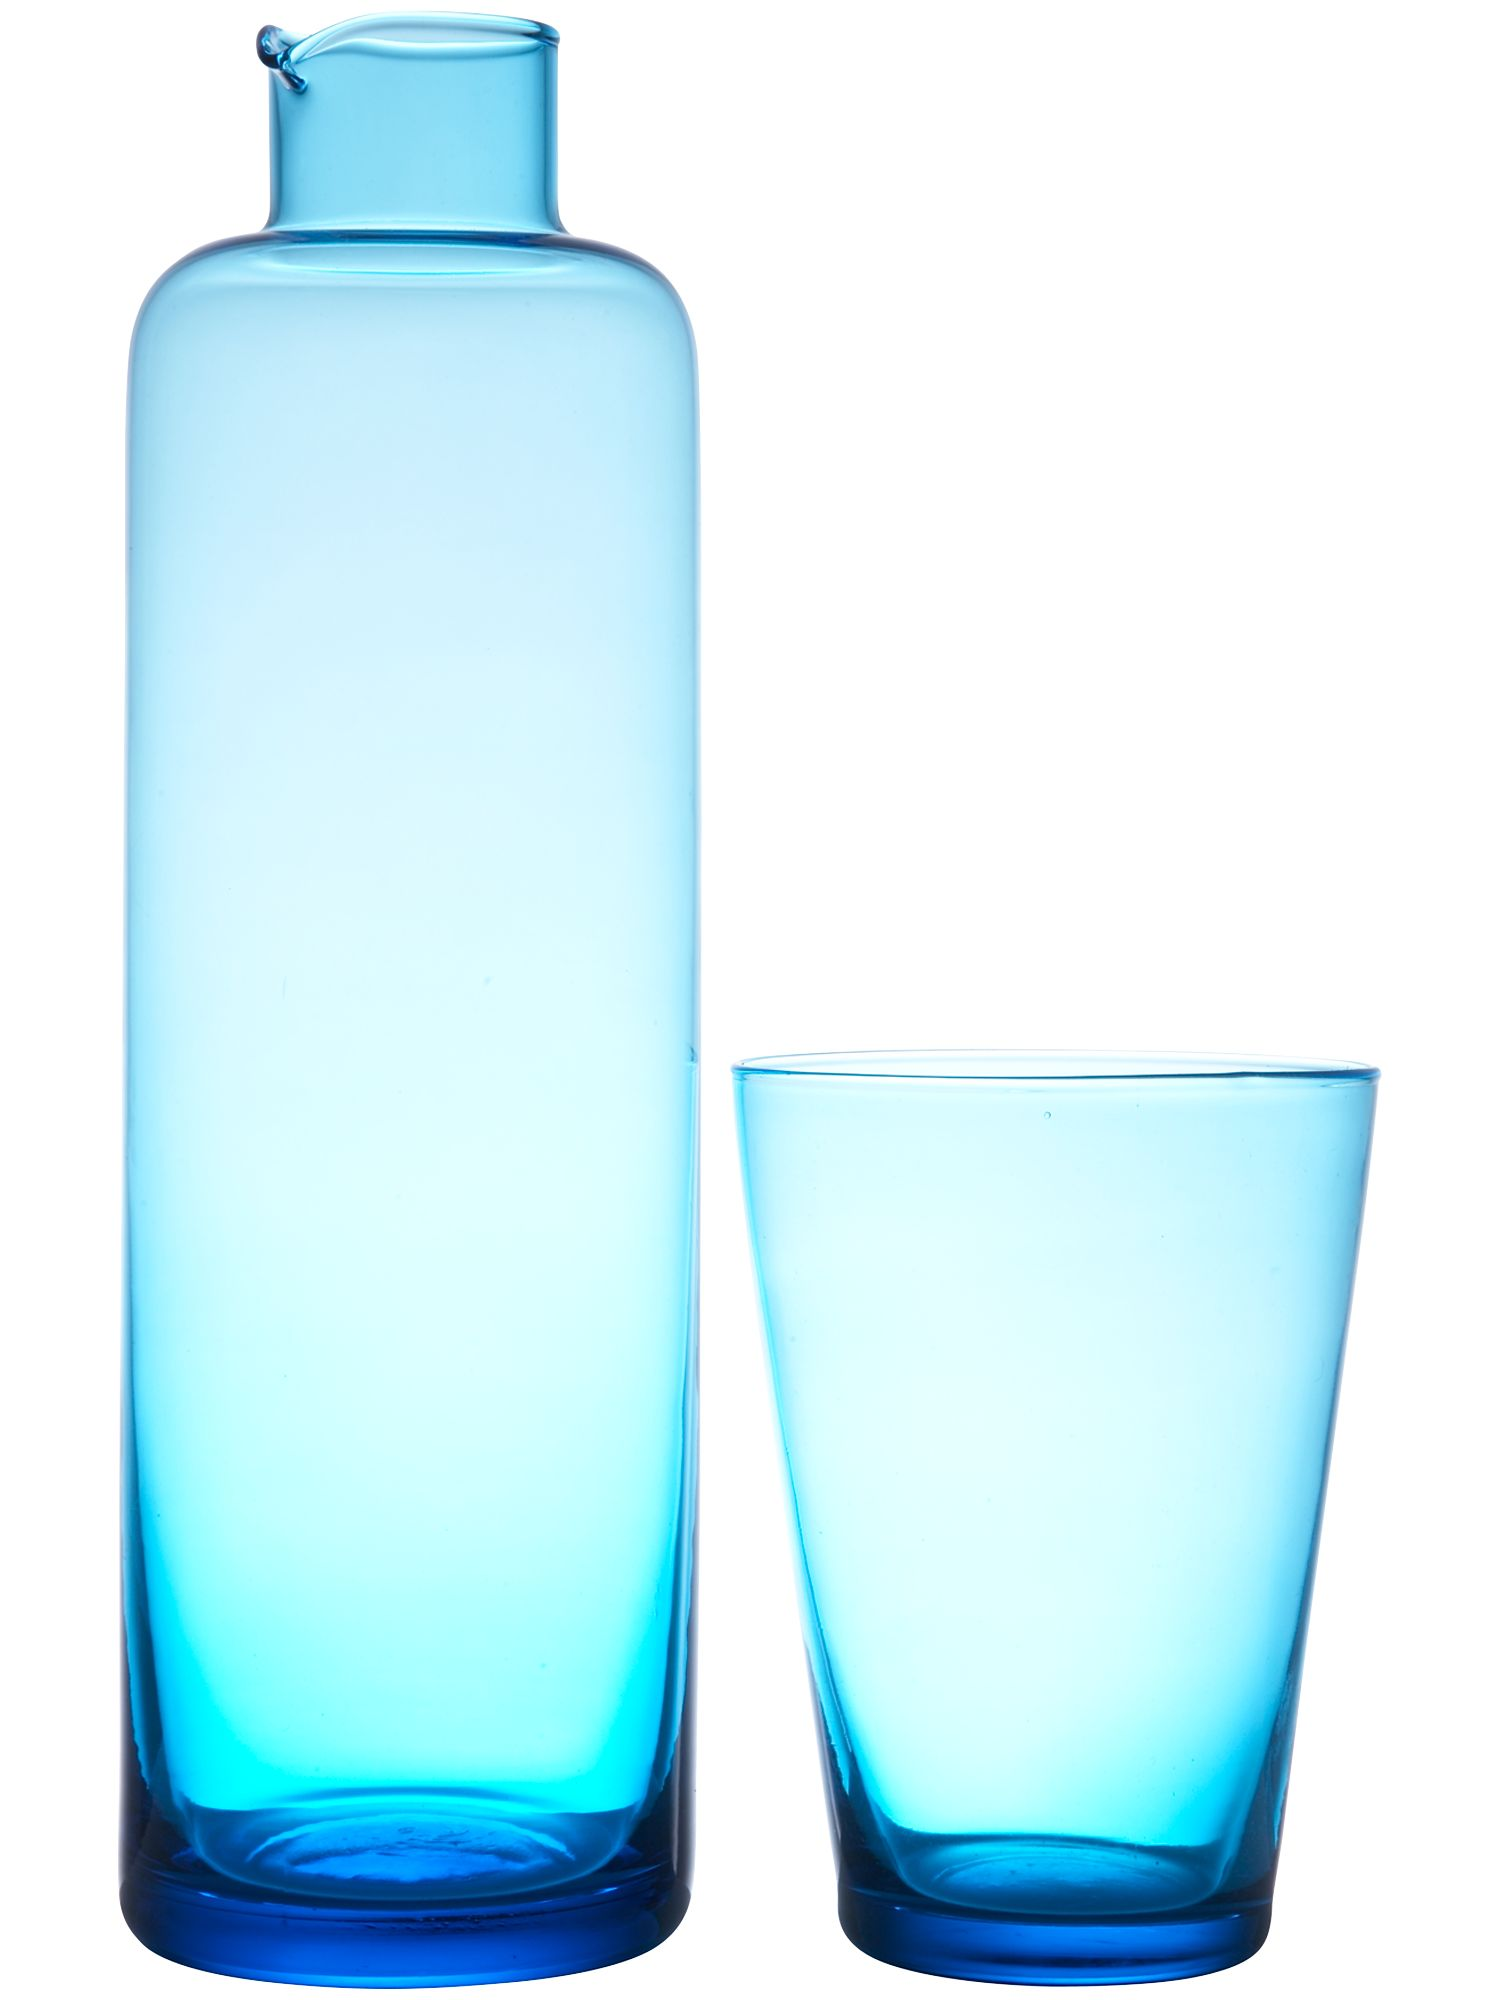 Linea Sky glass jug